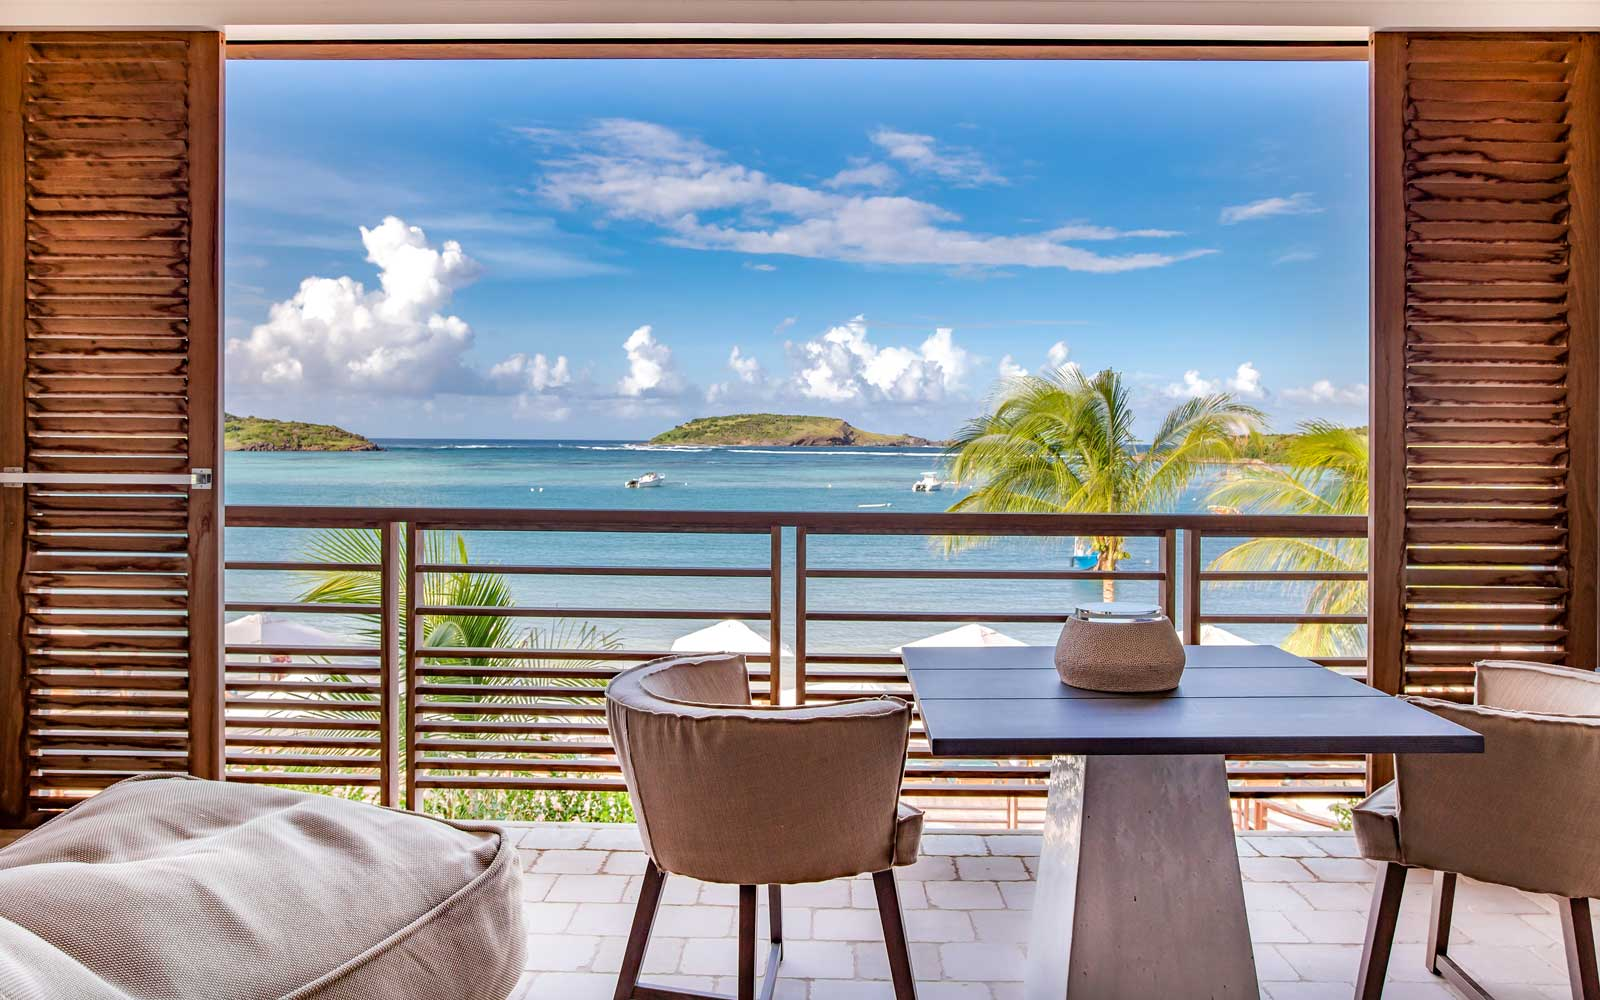 Window view from Le Barthelemy Hotel & Spa in St. Barth's, French West Indies